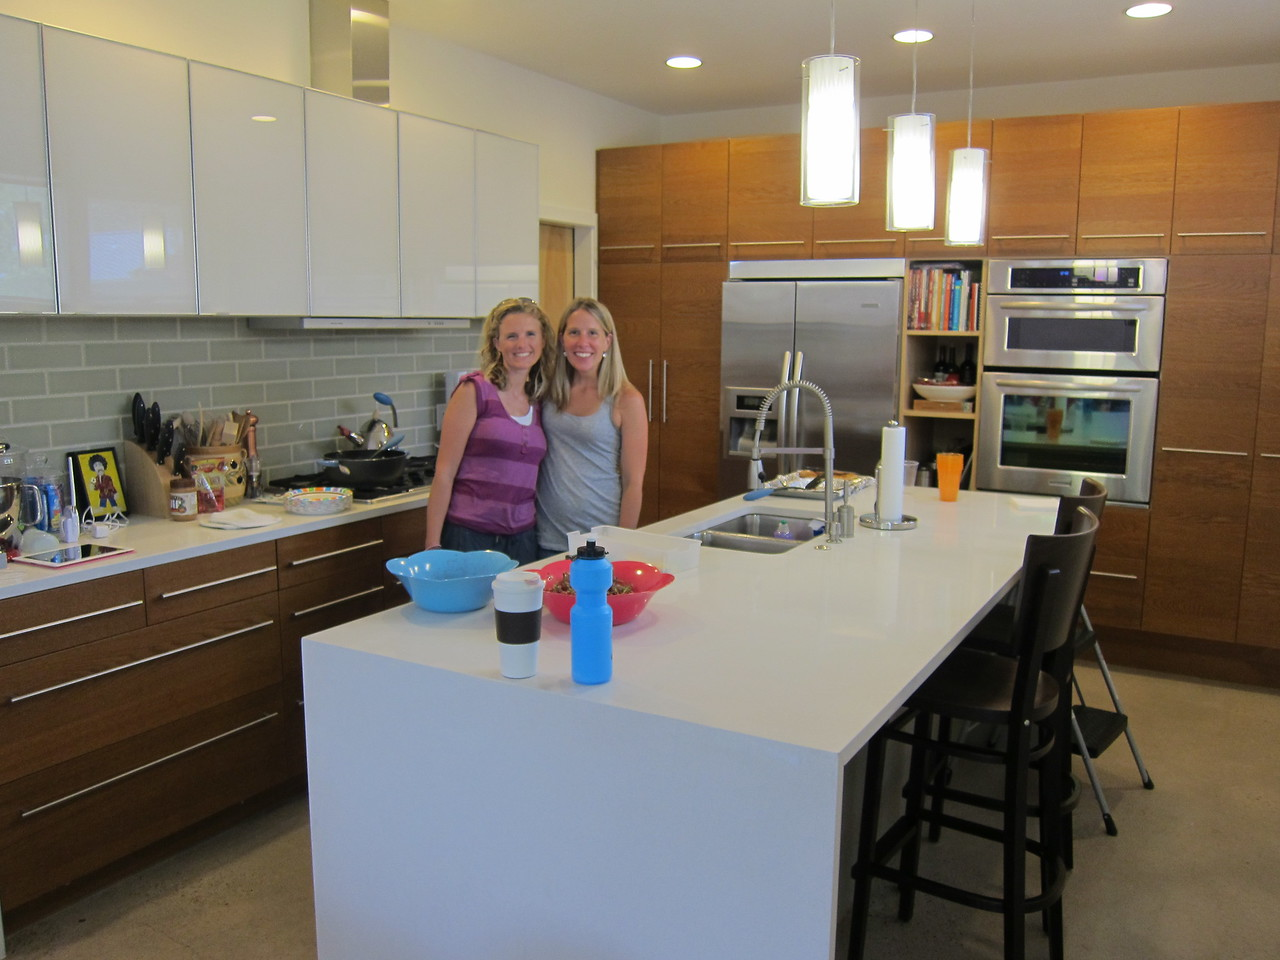 Courtney and Rachel in Rachel's gorgeous kitchen which I totally covet.